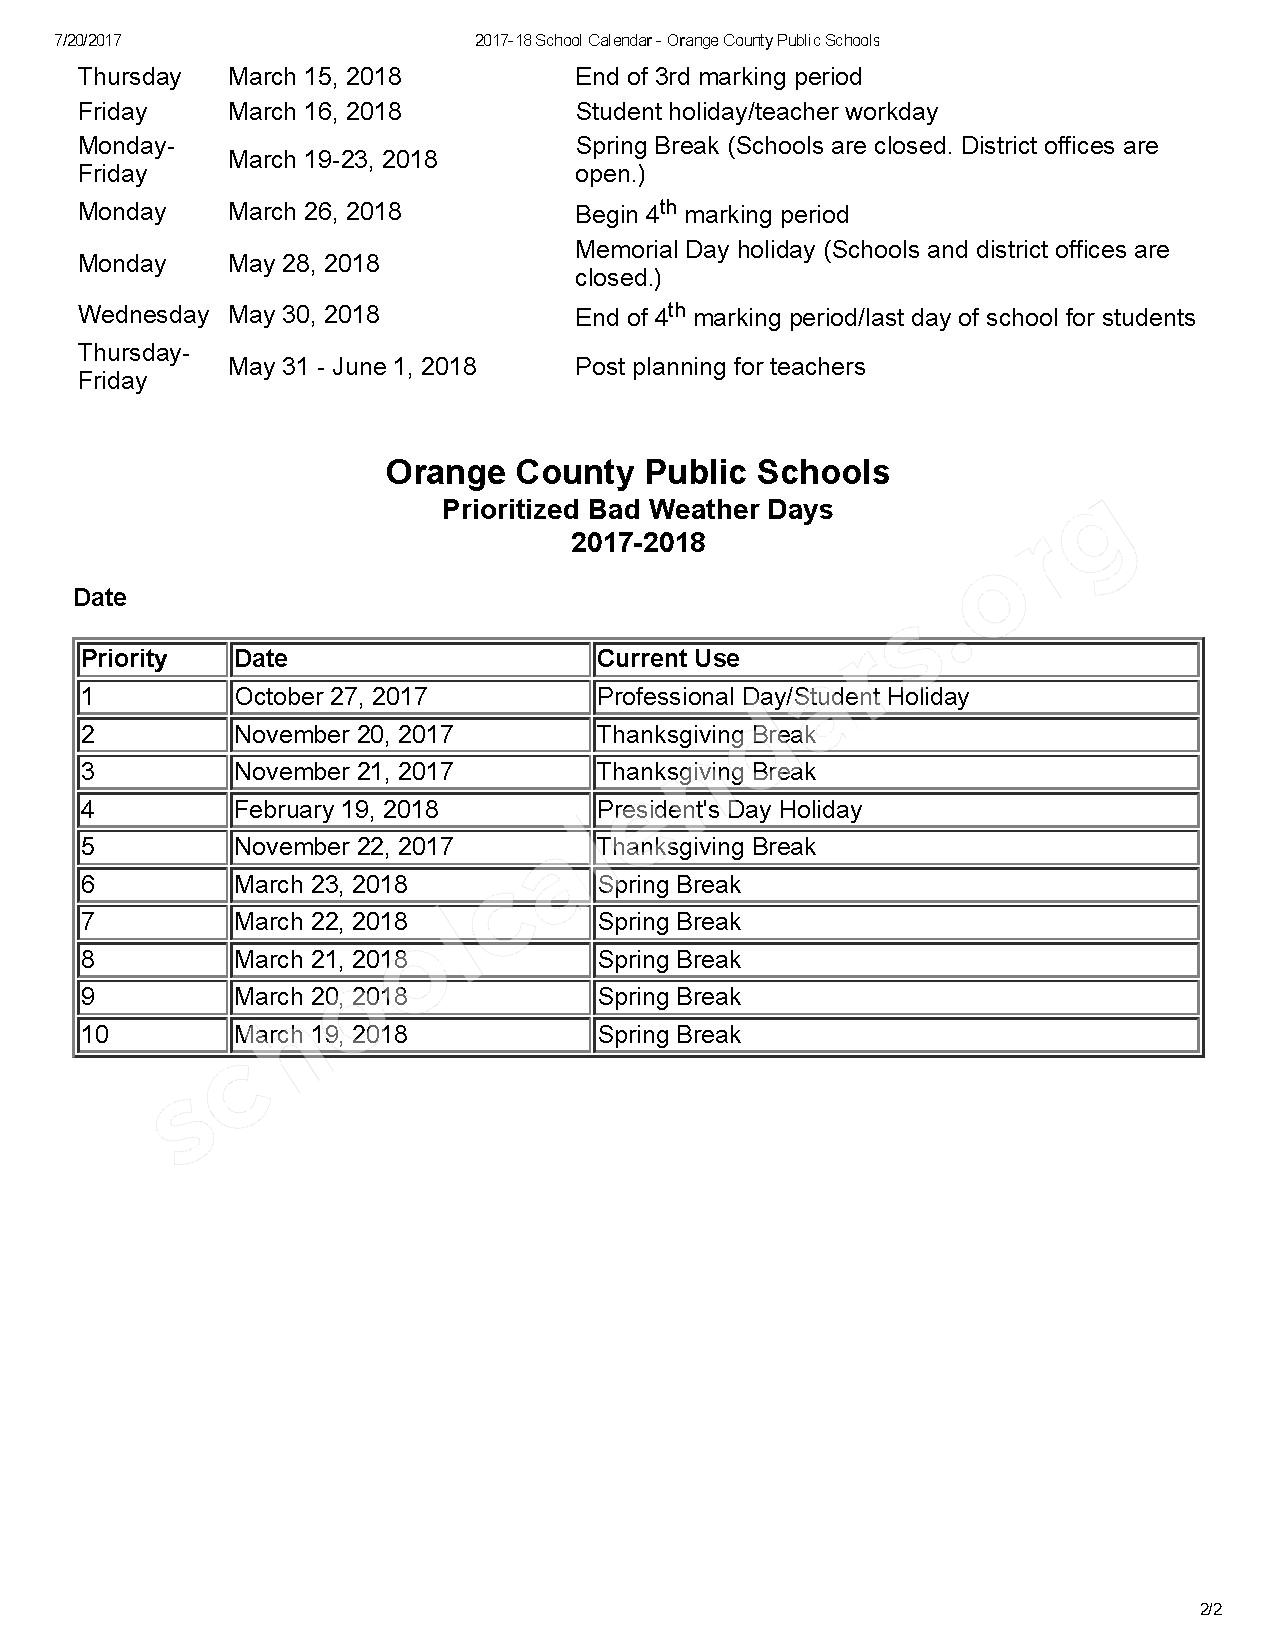 2017 - 2018 OCPS Calendar – Meadowbrook Middle School – page 2